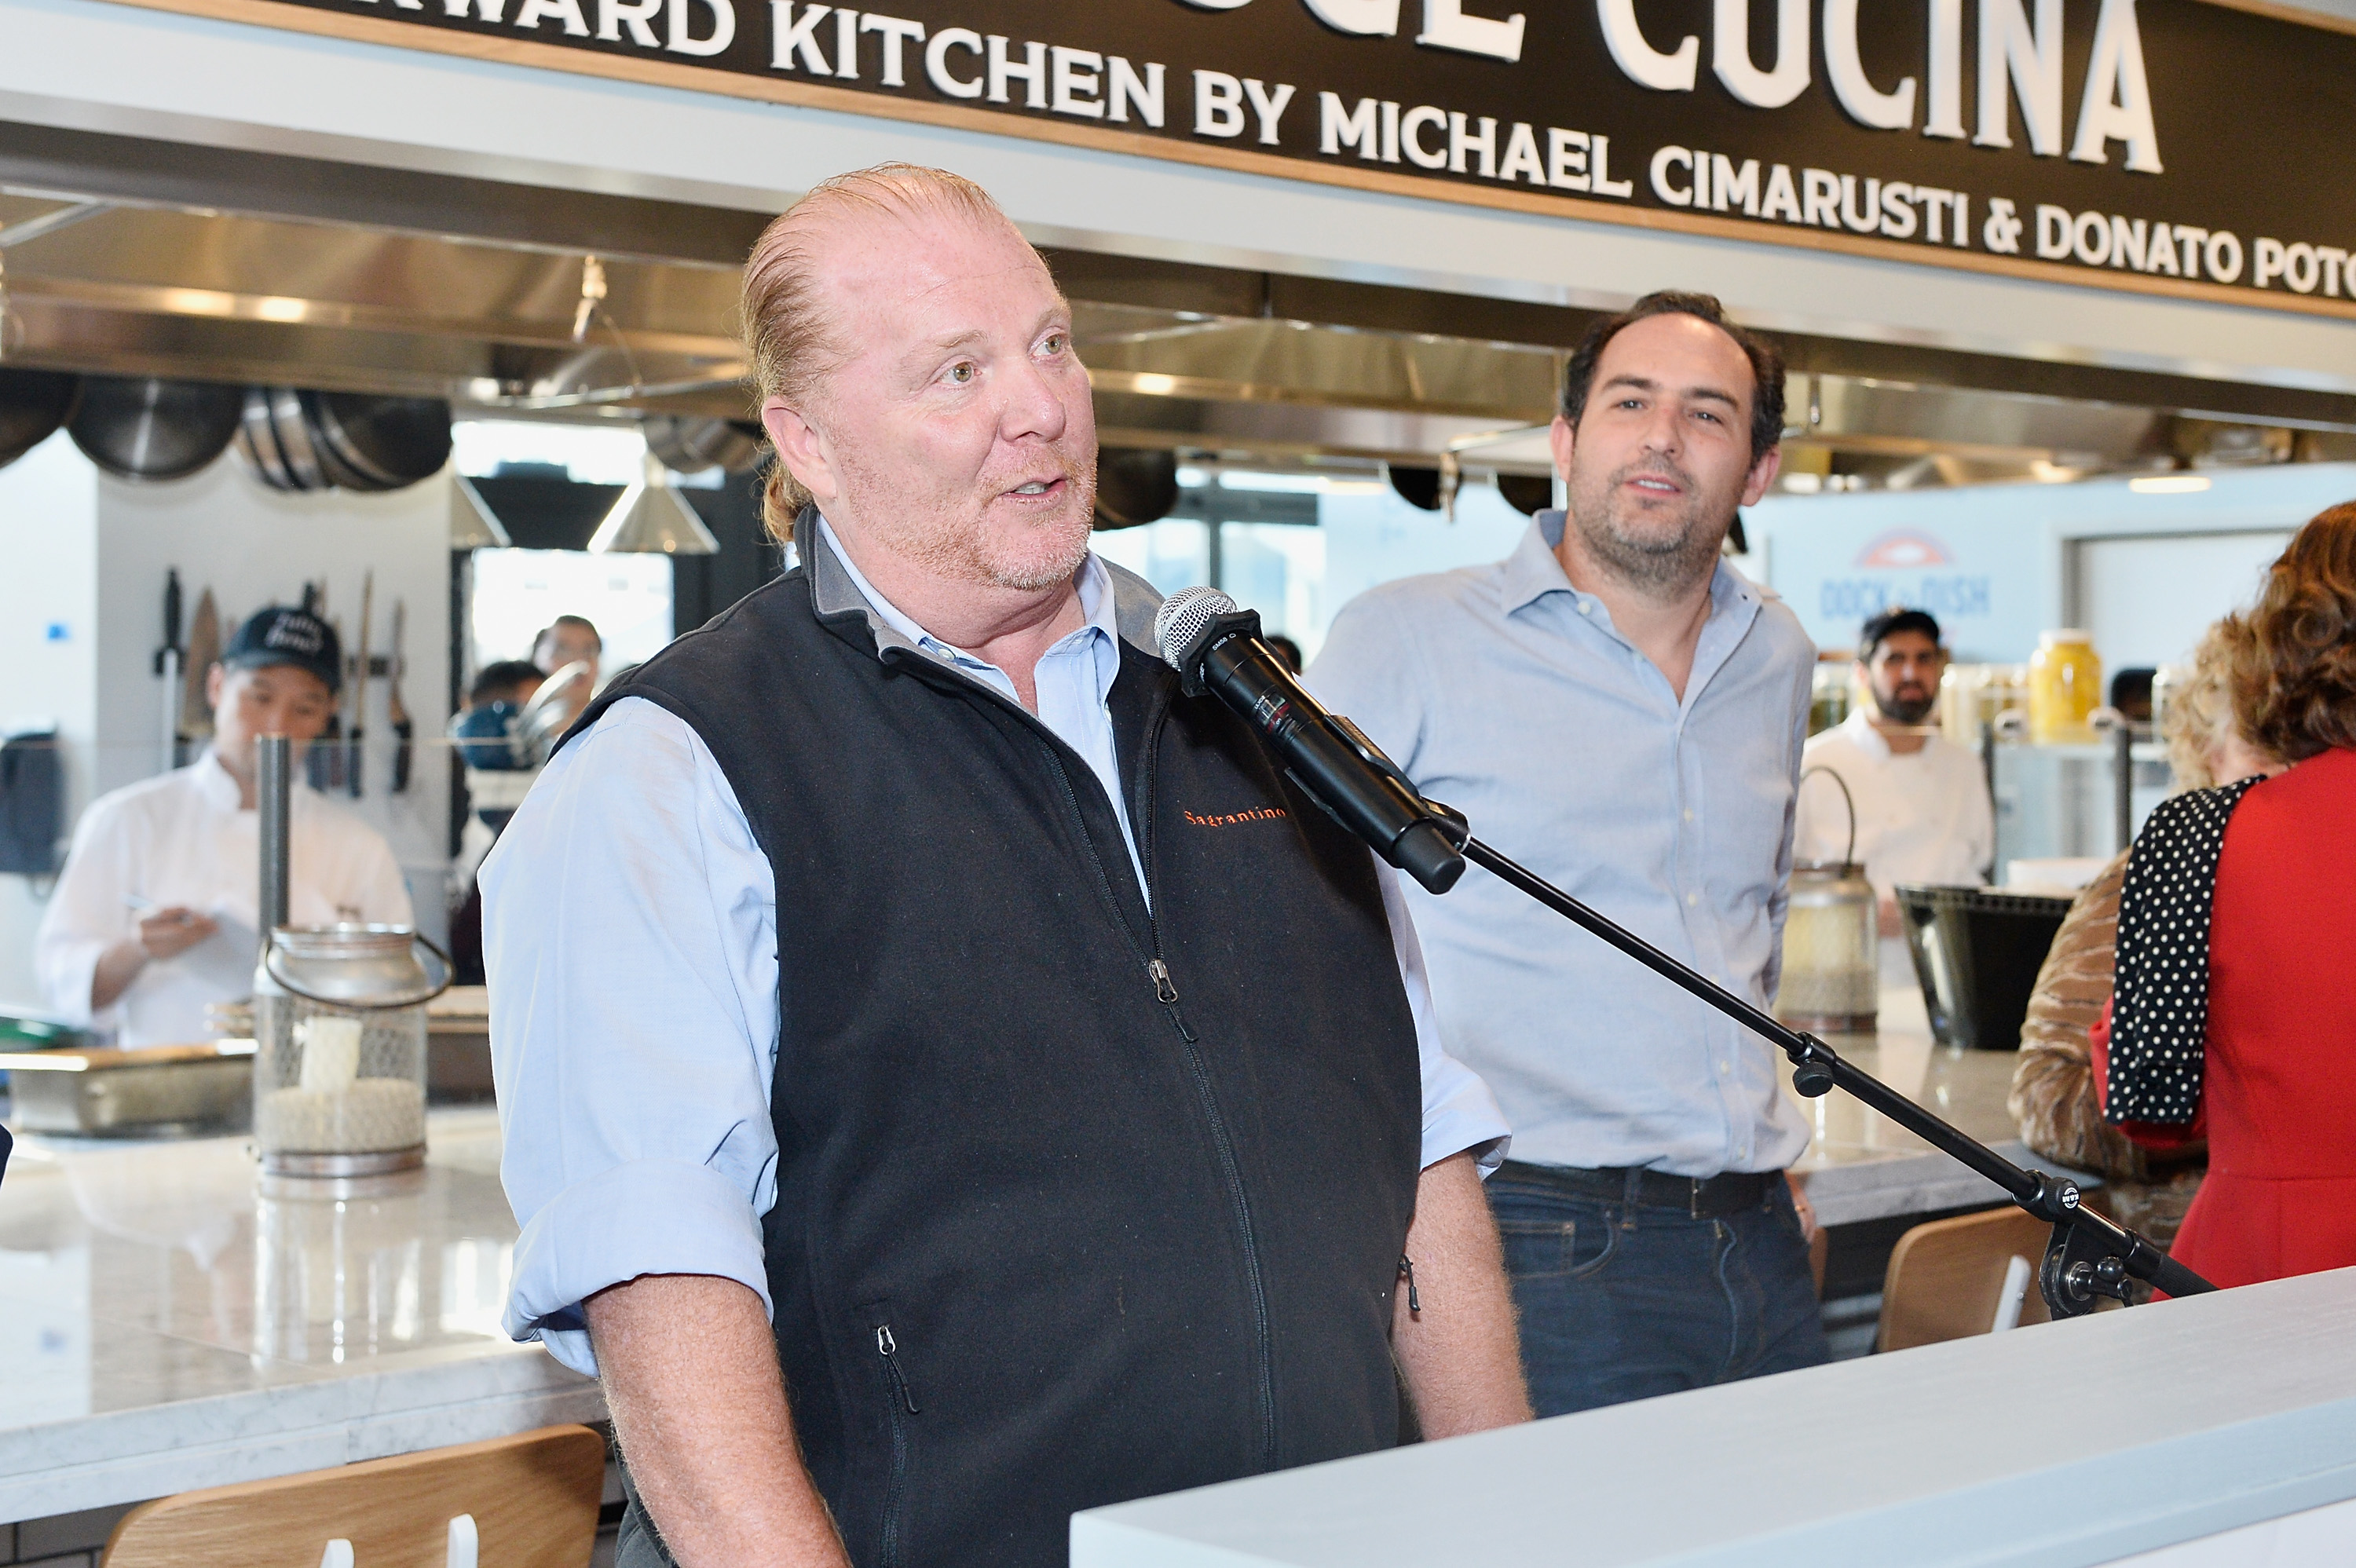 Former celebrity chef Mario Batali speaks at the opening of Eataly in Los Angeles